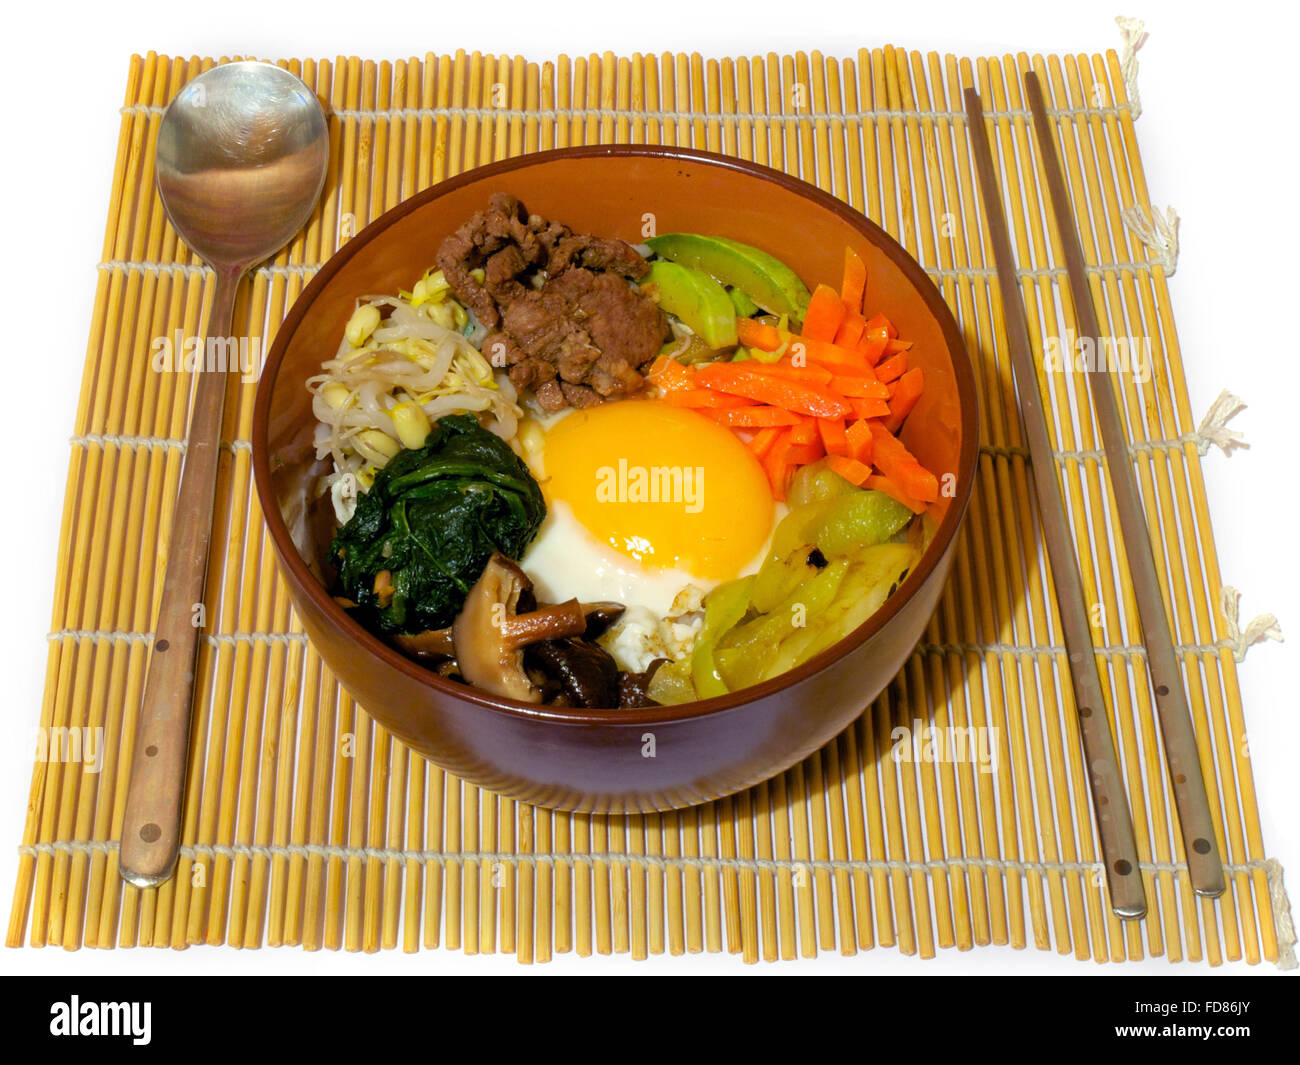 Bibimpab korean dish with vegetables, beef and egg on rice - Stock Image